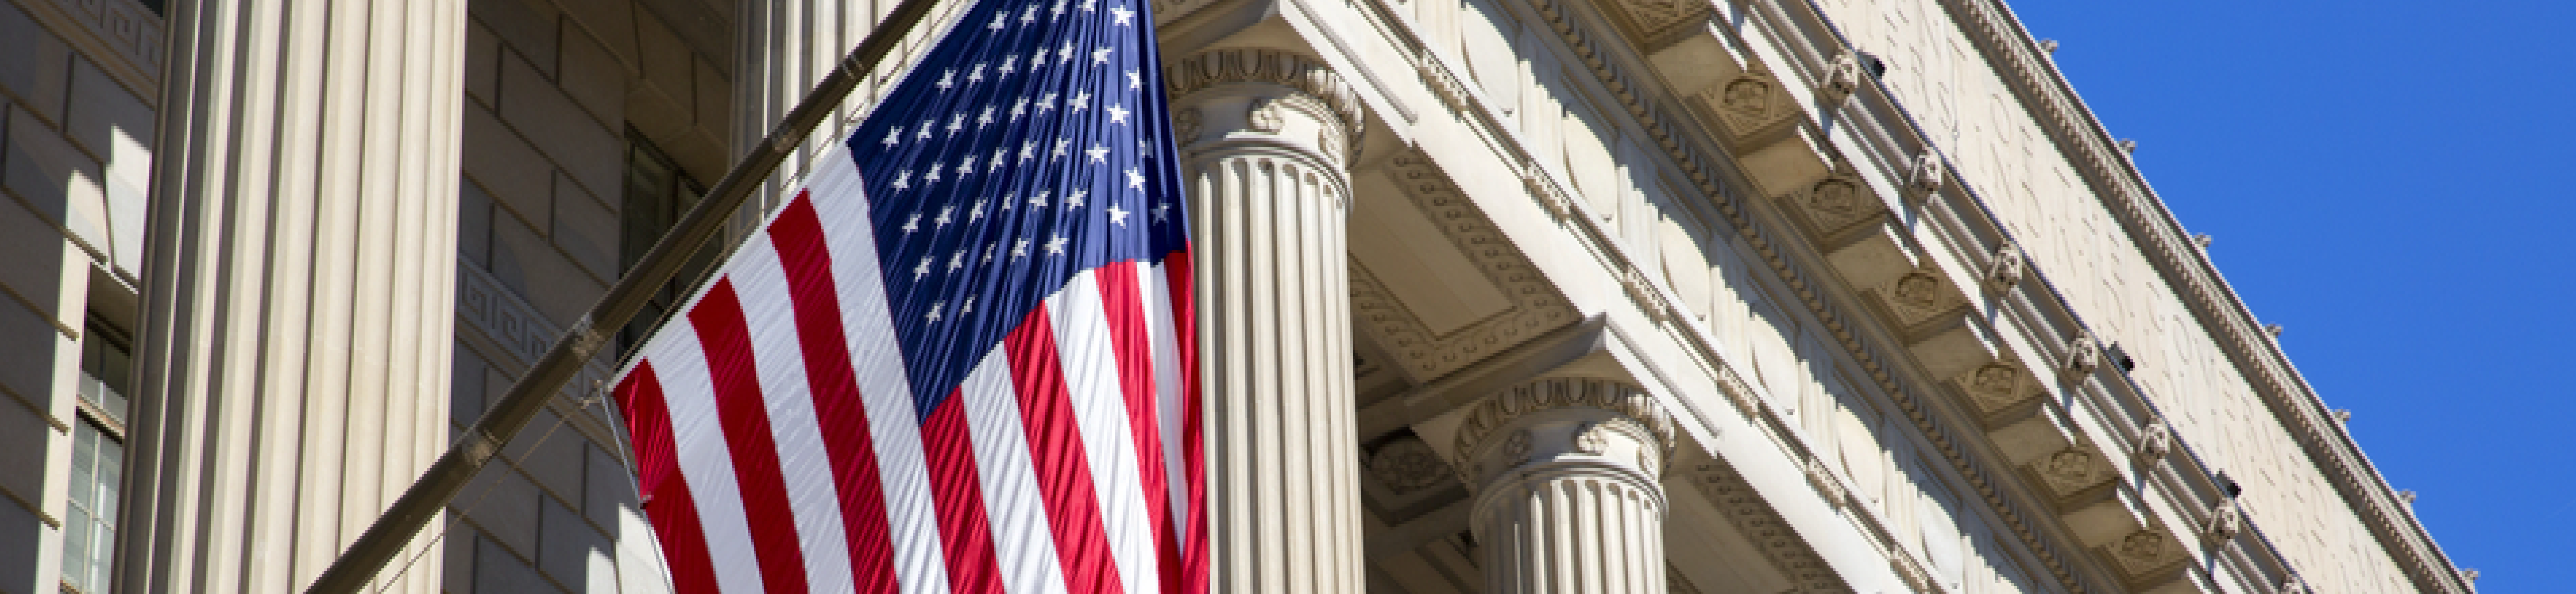 political-opinions-government-handling_american-flag-outside-government-building